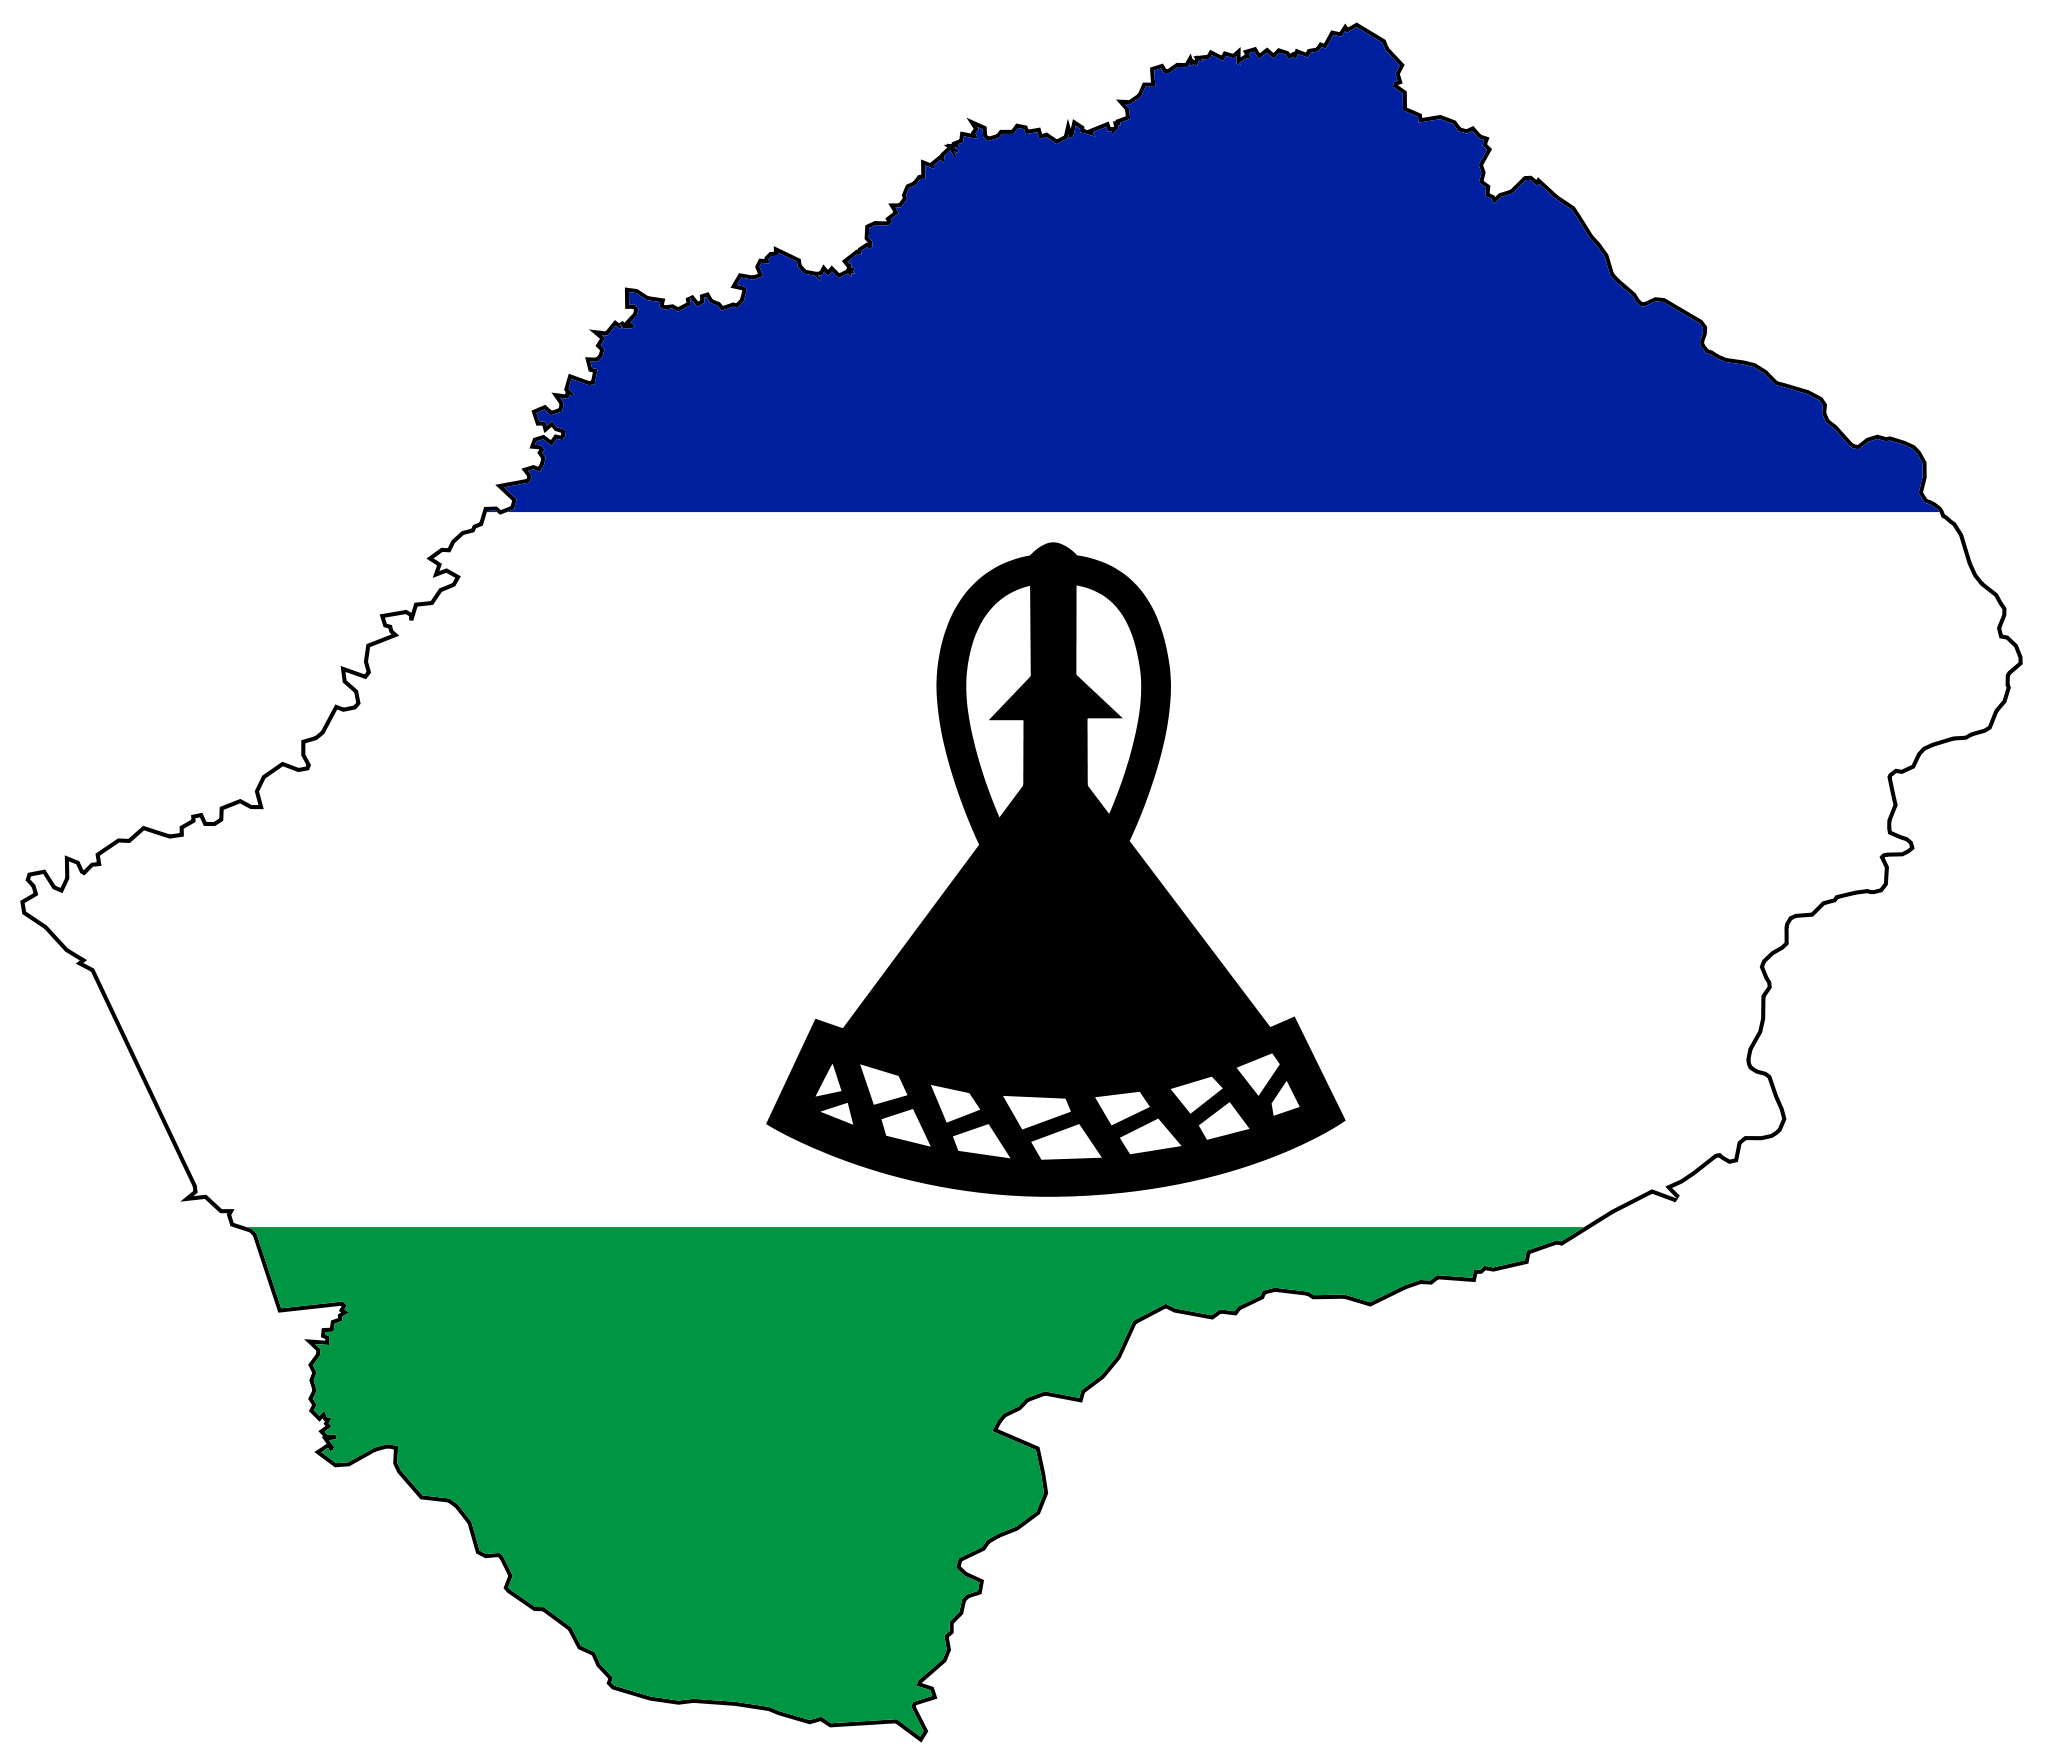 Lesotho Flags and Symbols and National Anthem